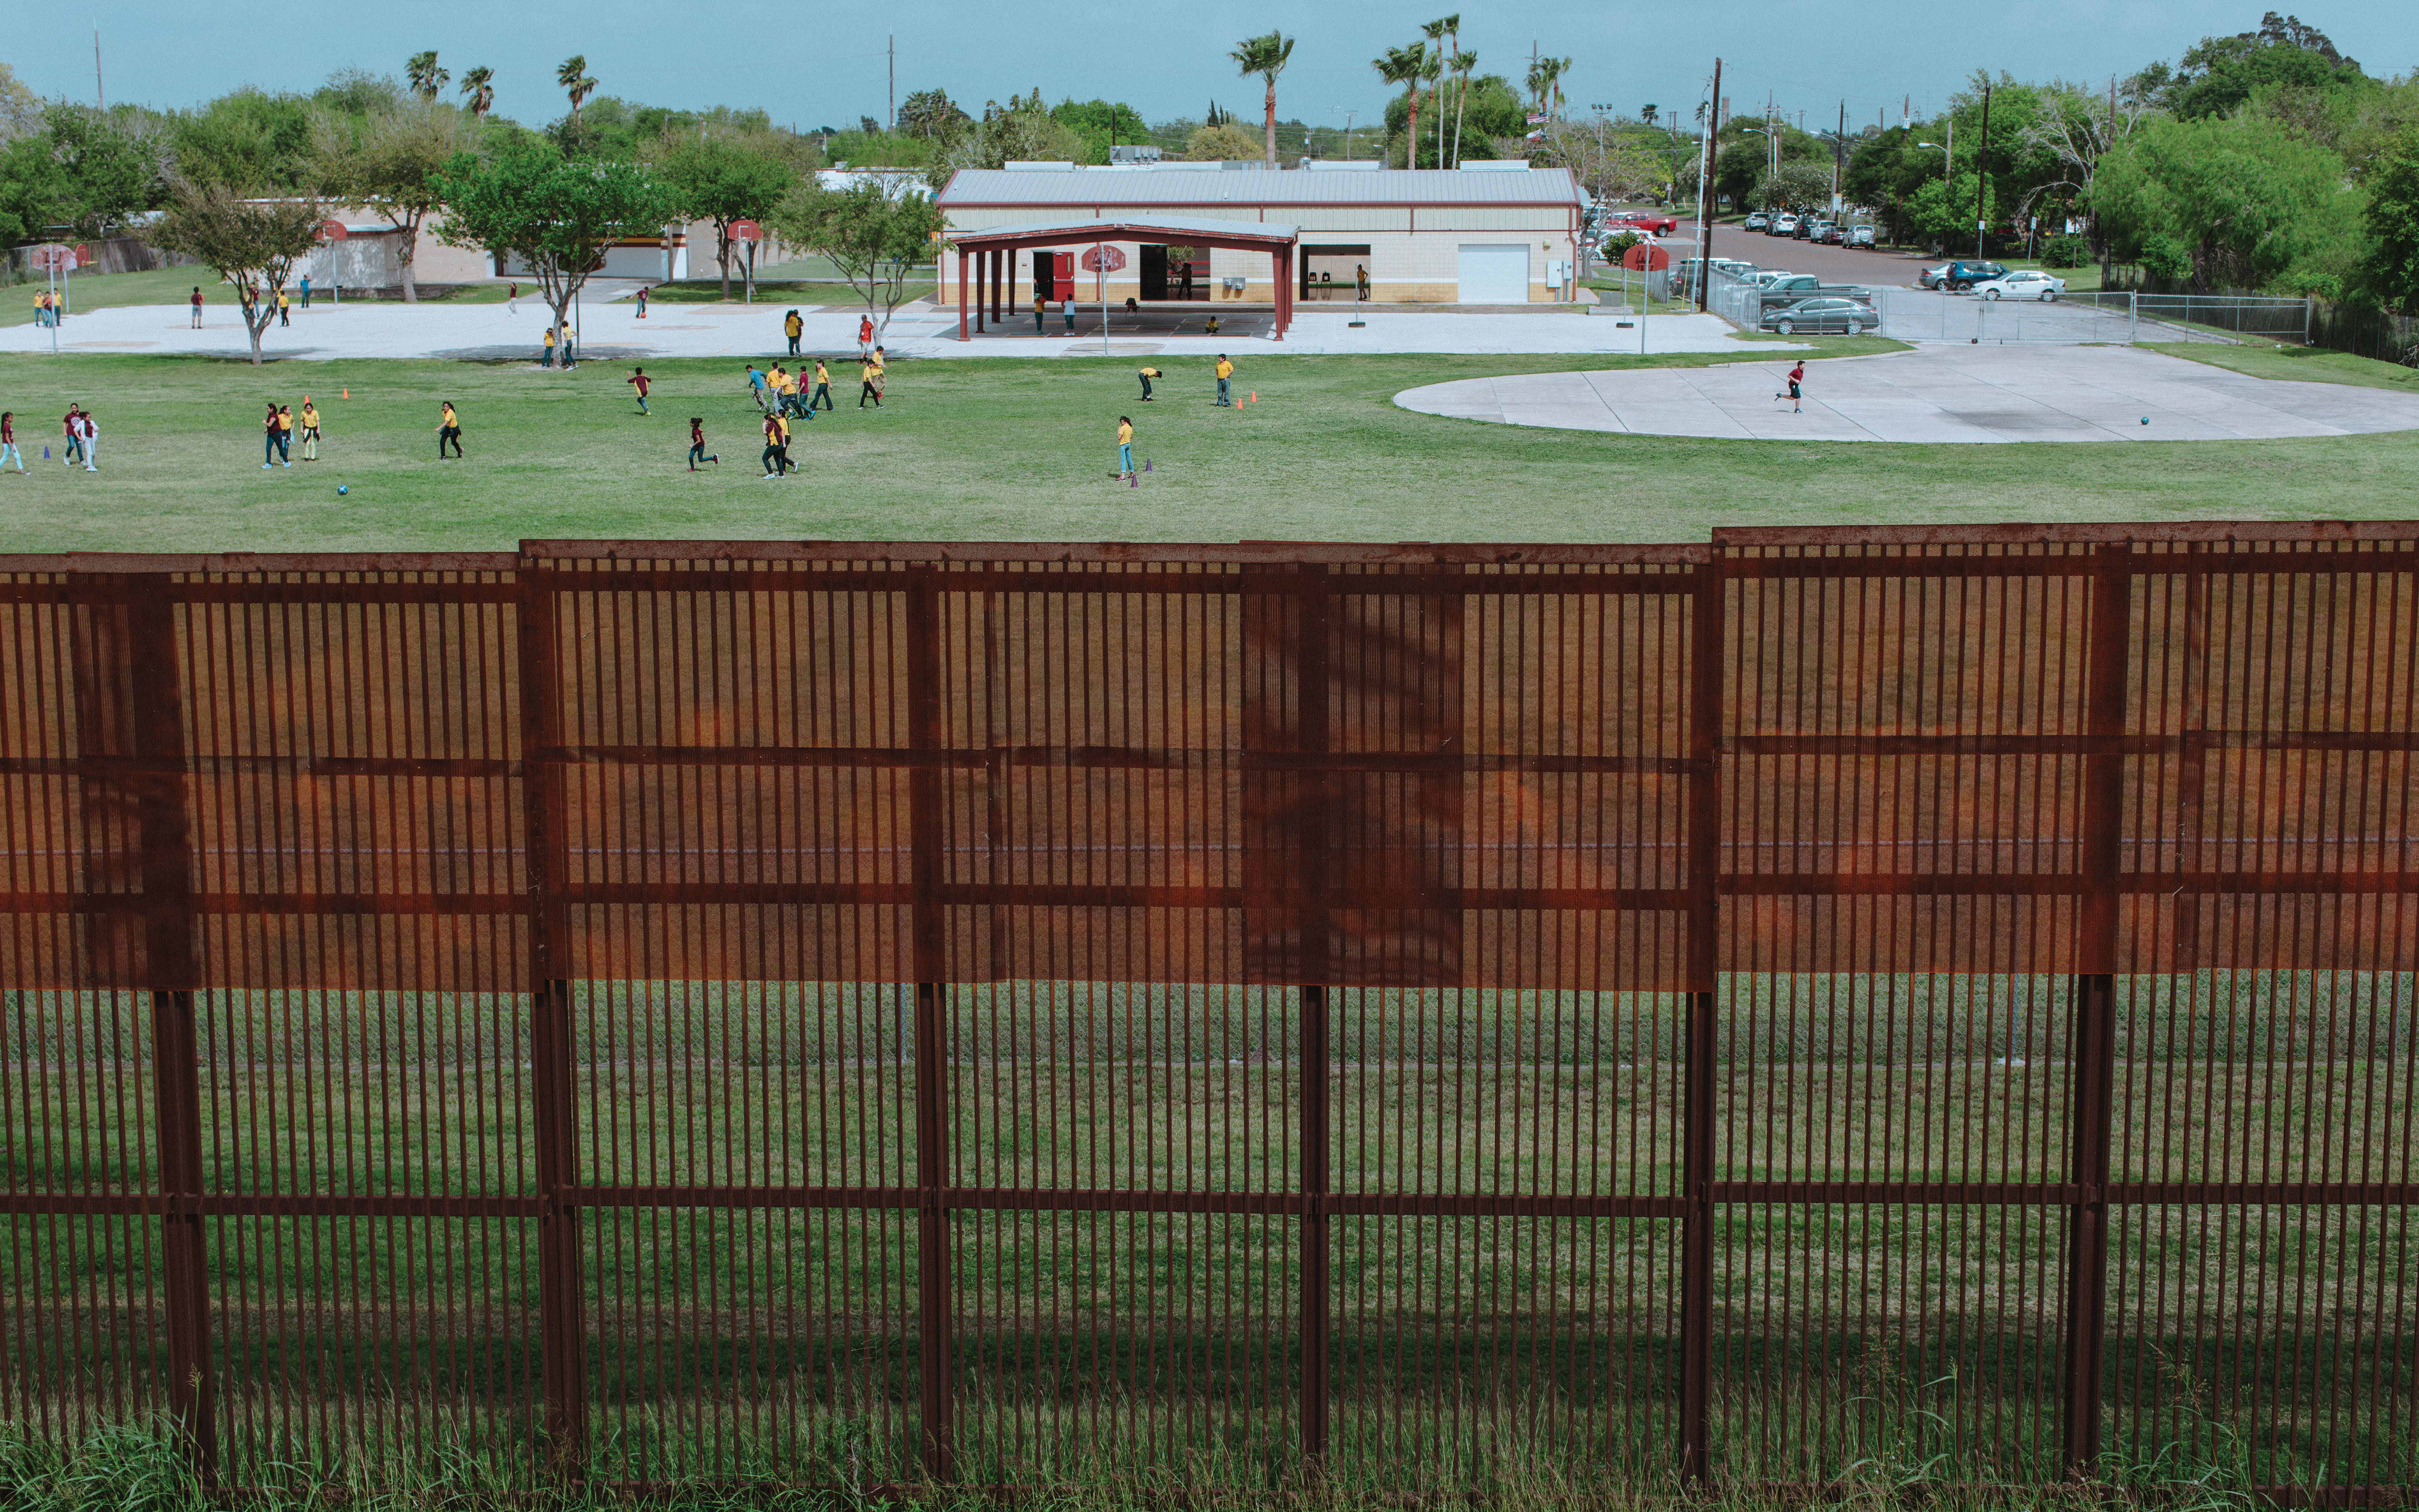 Surprising Photos From The Us Mexico Border Vice